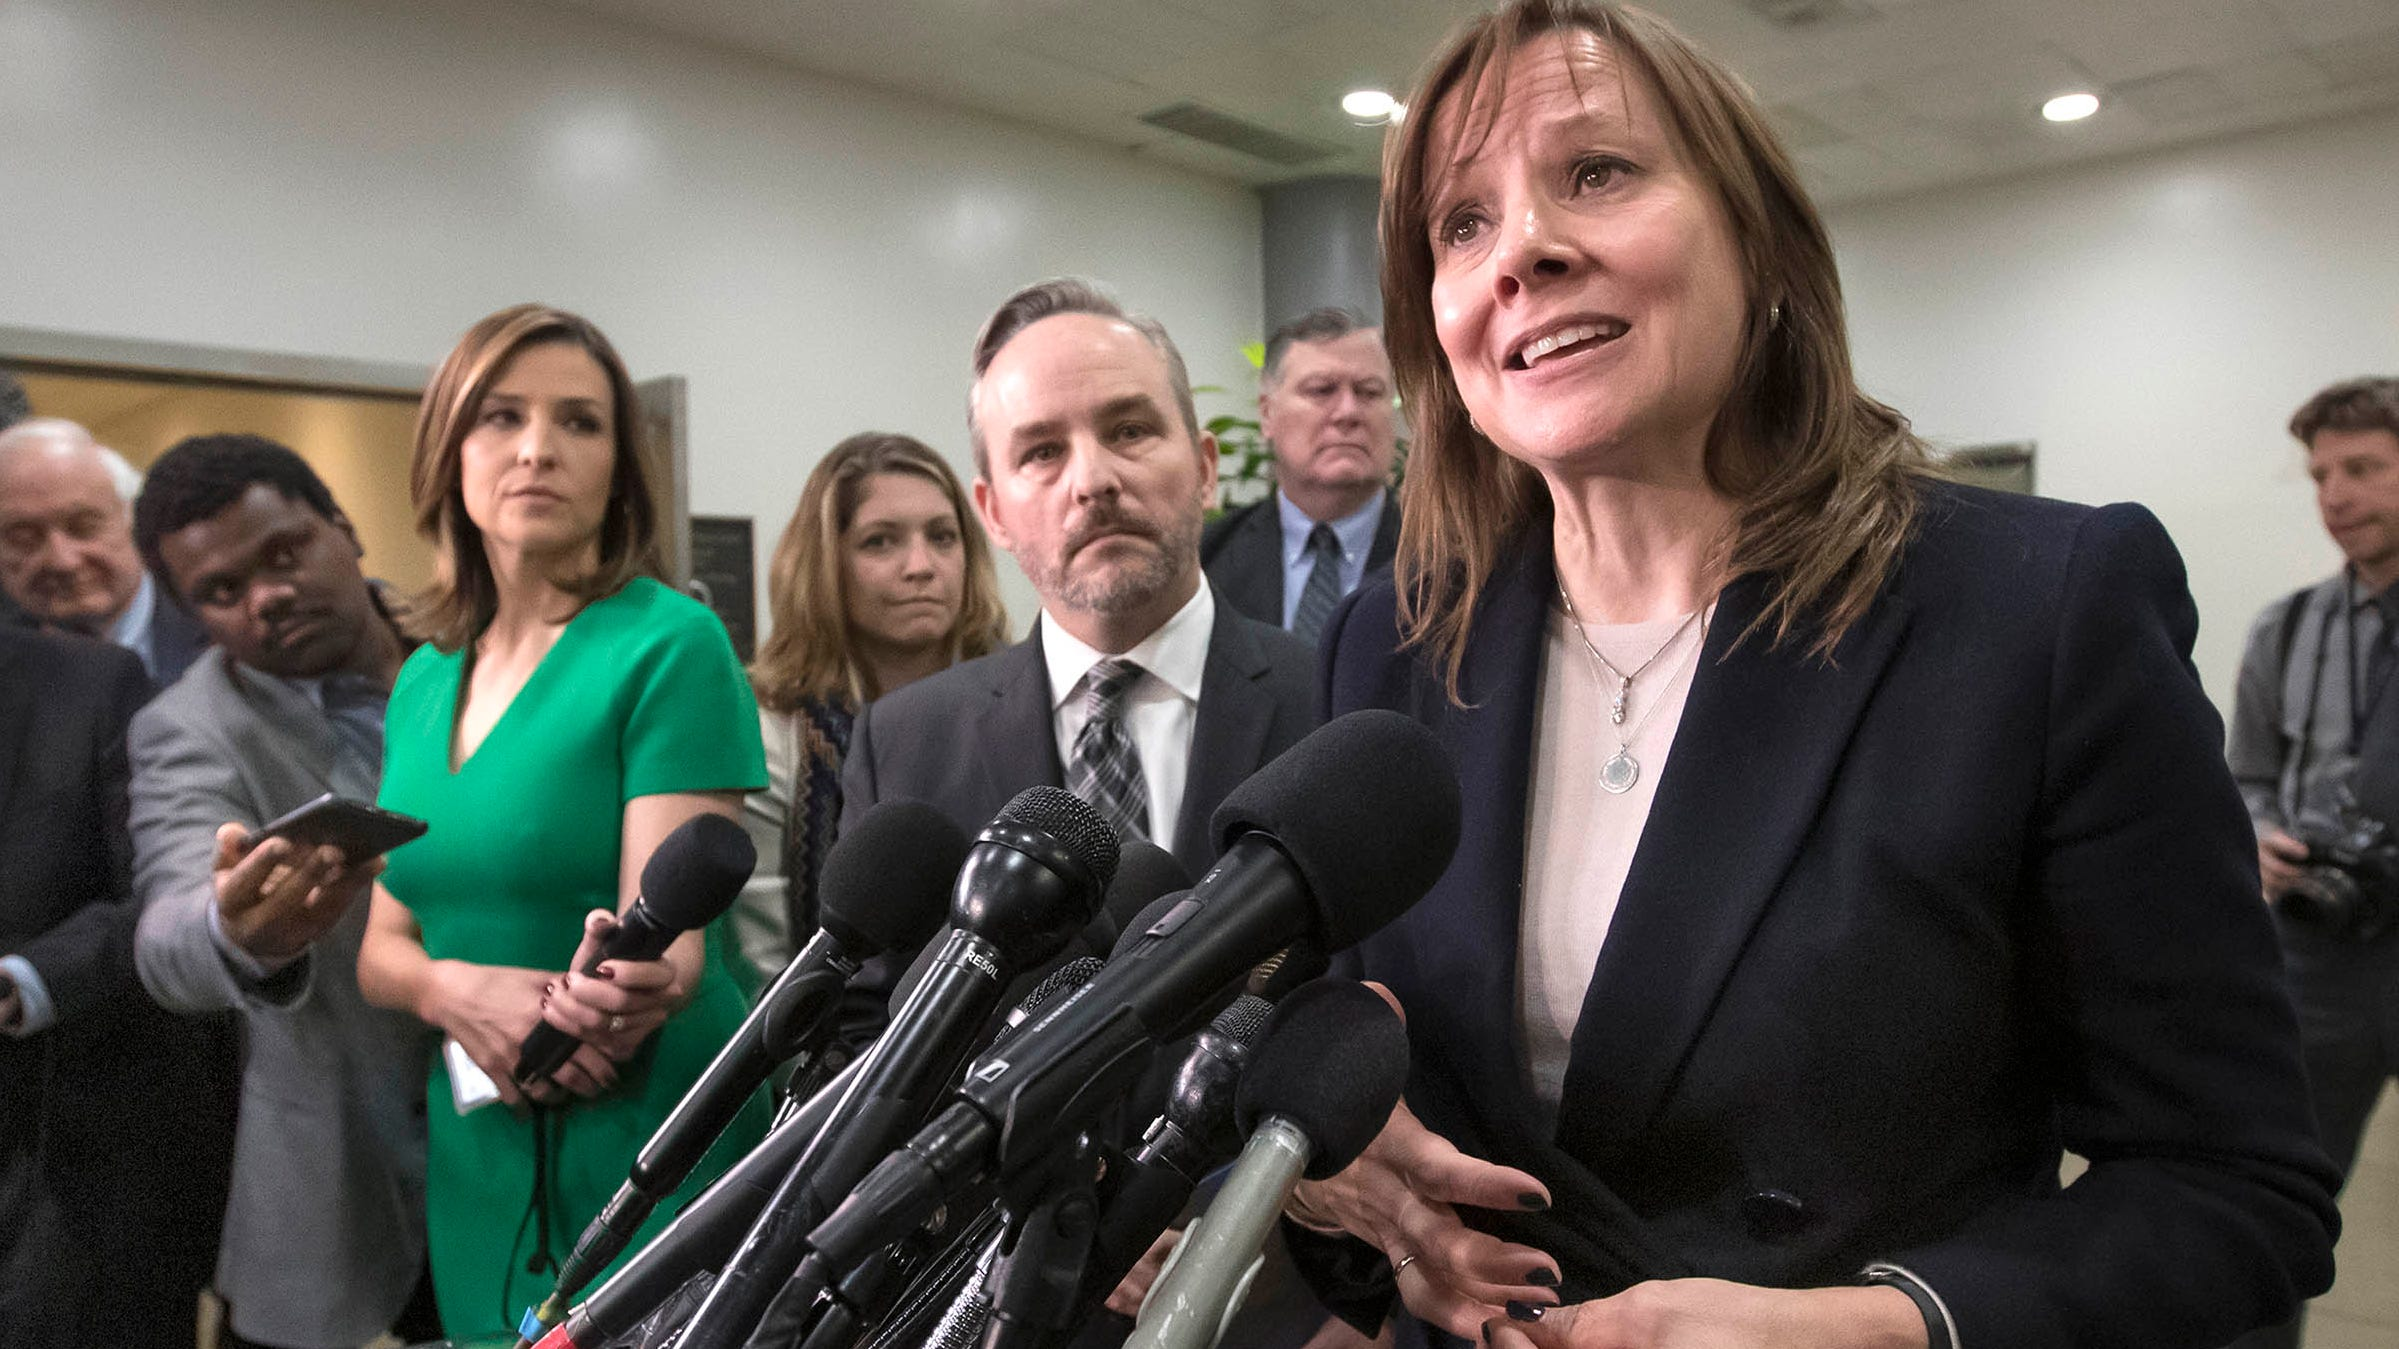 General Motors CEO Mary Barra speaks to reporters after meeting with the Michigan congressional delegation to discuss plans for the restructuring by the automaker, on Capitol Hill in Washington, Thursday, Dec. 6, 2018.